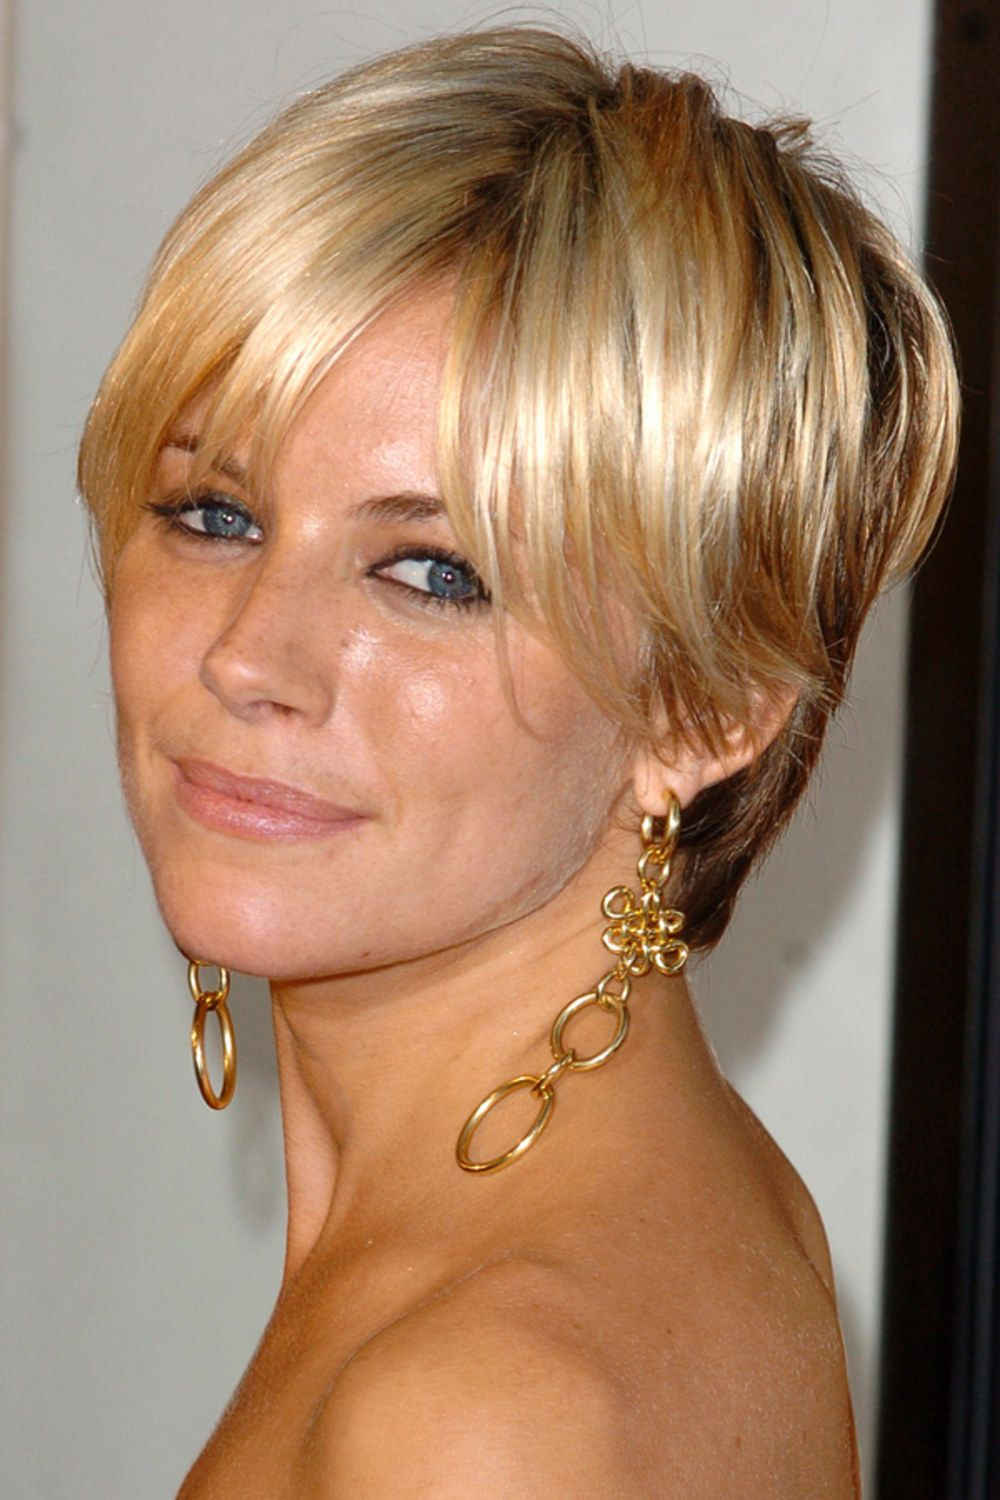 Jennifer Lawrence Gets A Pixie Crop Hunger Games Star Debuts New